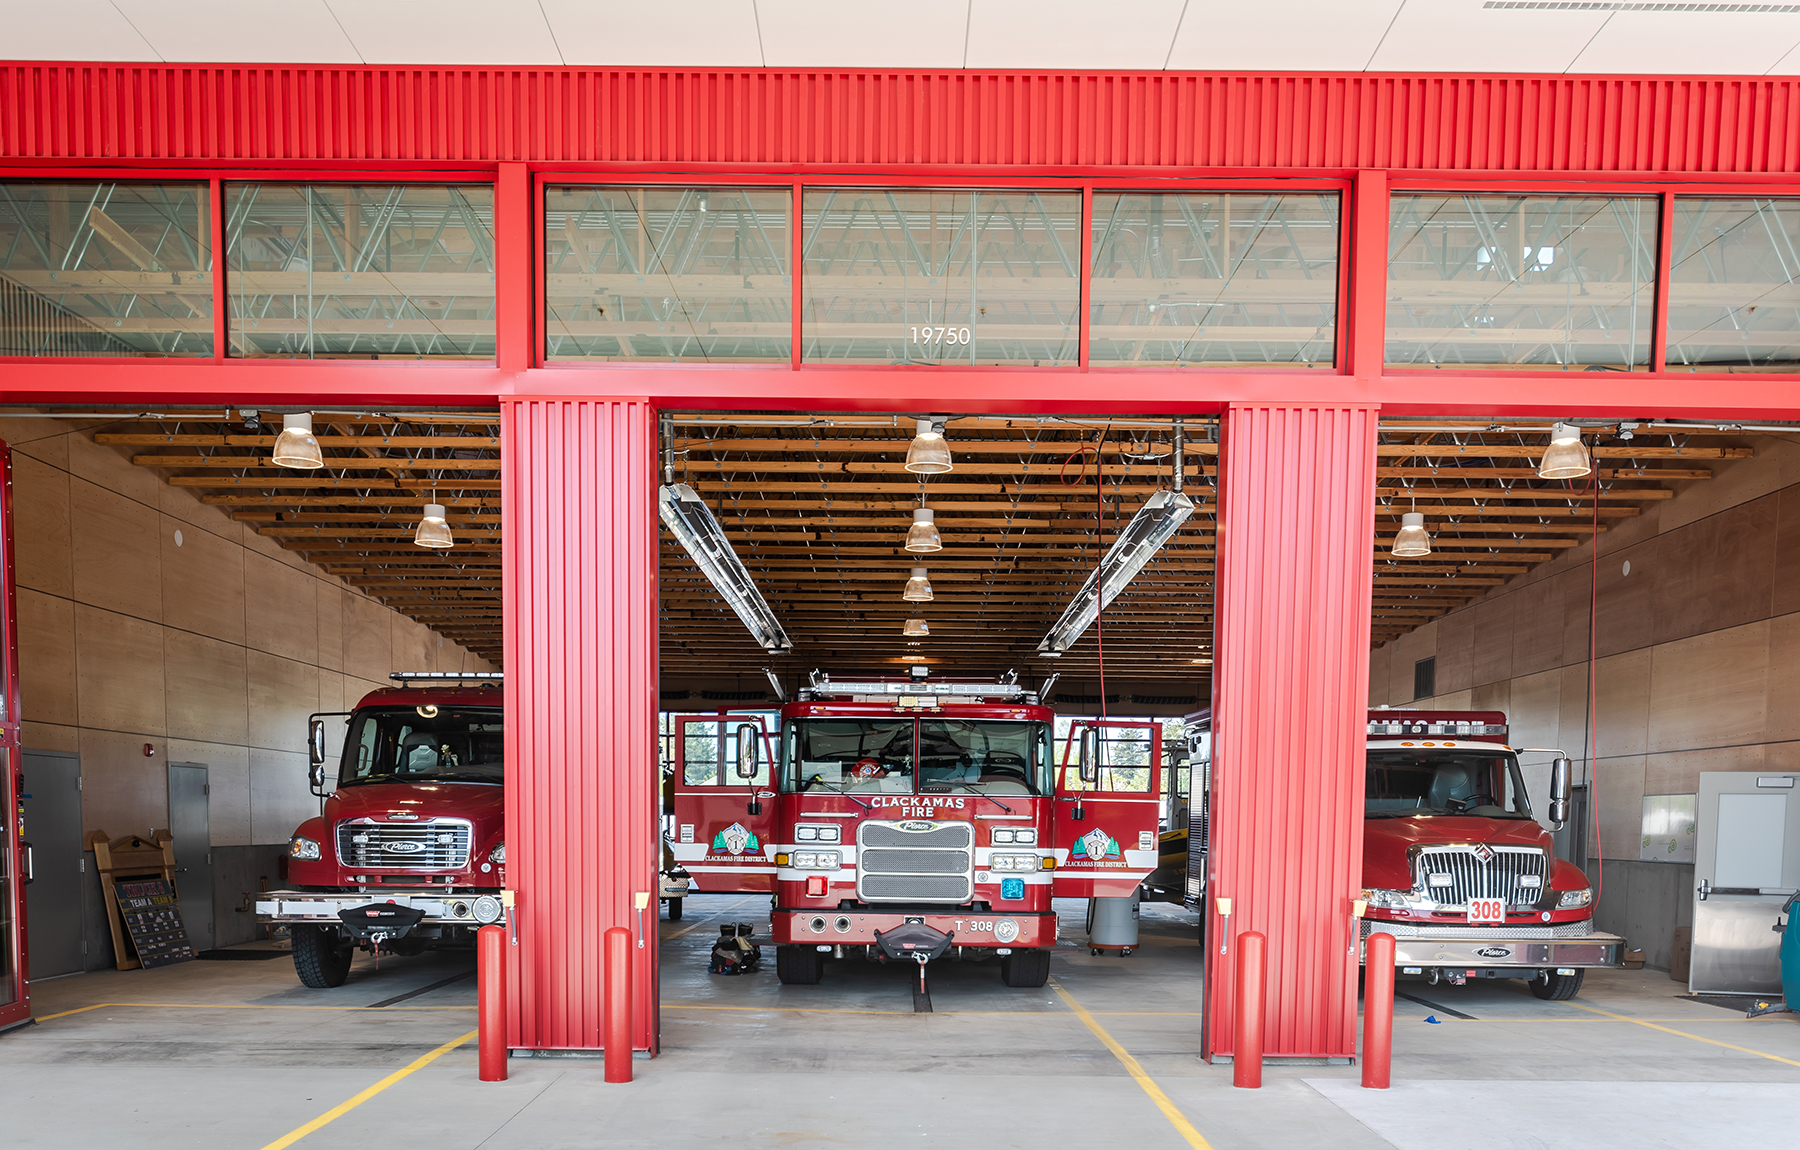 CFD - Station 19 - edited-19a.jpg